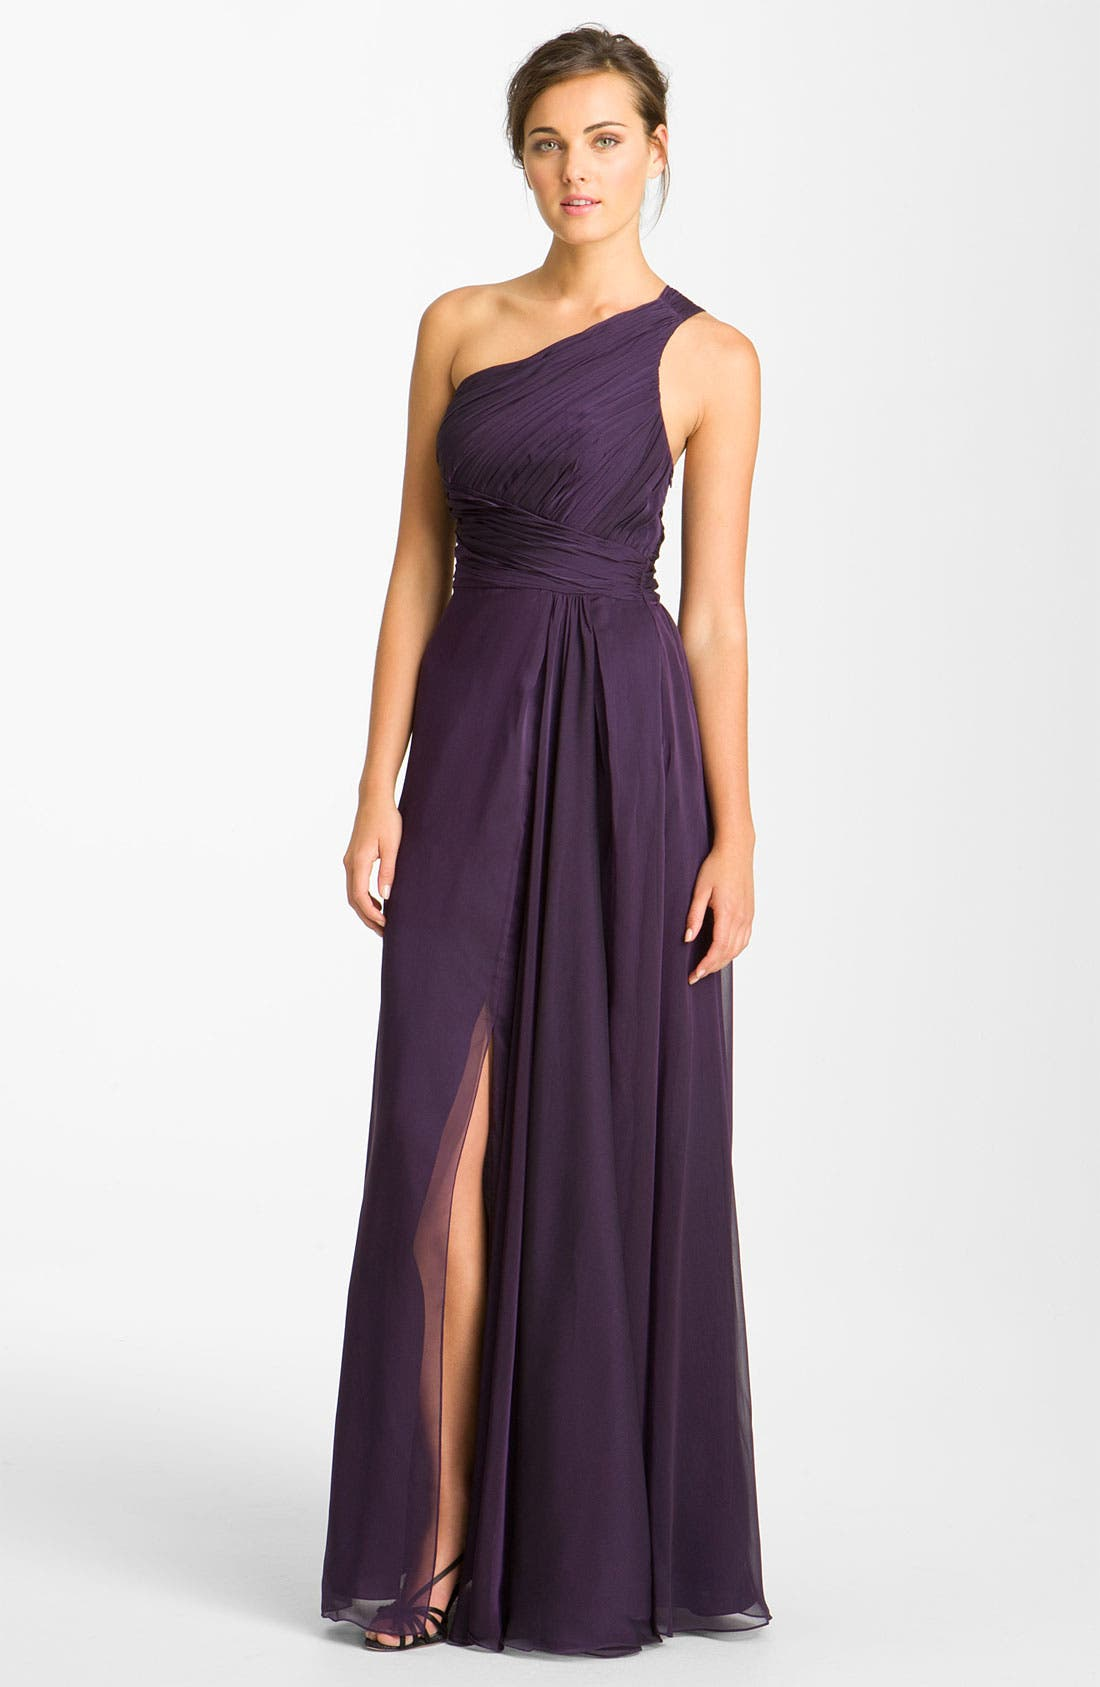 Alternate Image 1 Selected - ML Monique Lhuillier Bridesmaids Pleated One Shoulder Chiffon Gown (Nordstrom Exclusive)